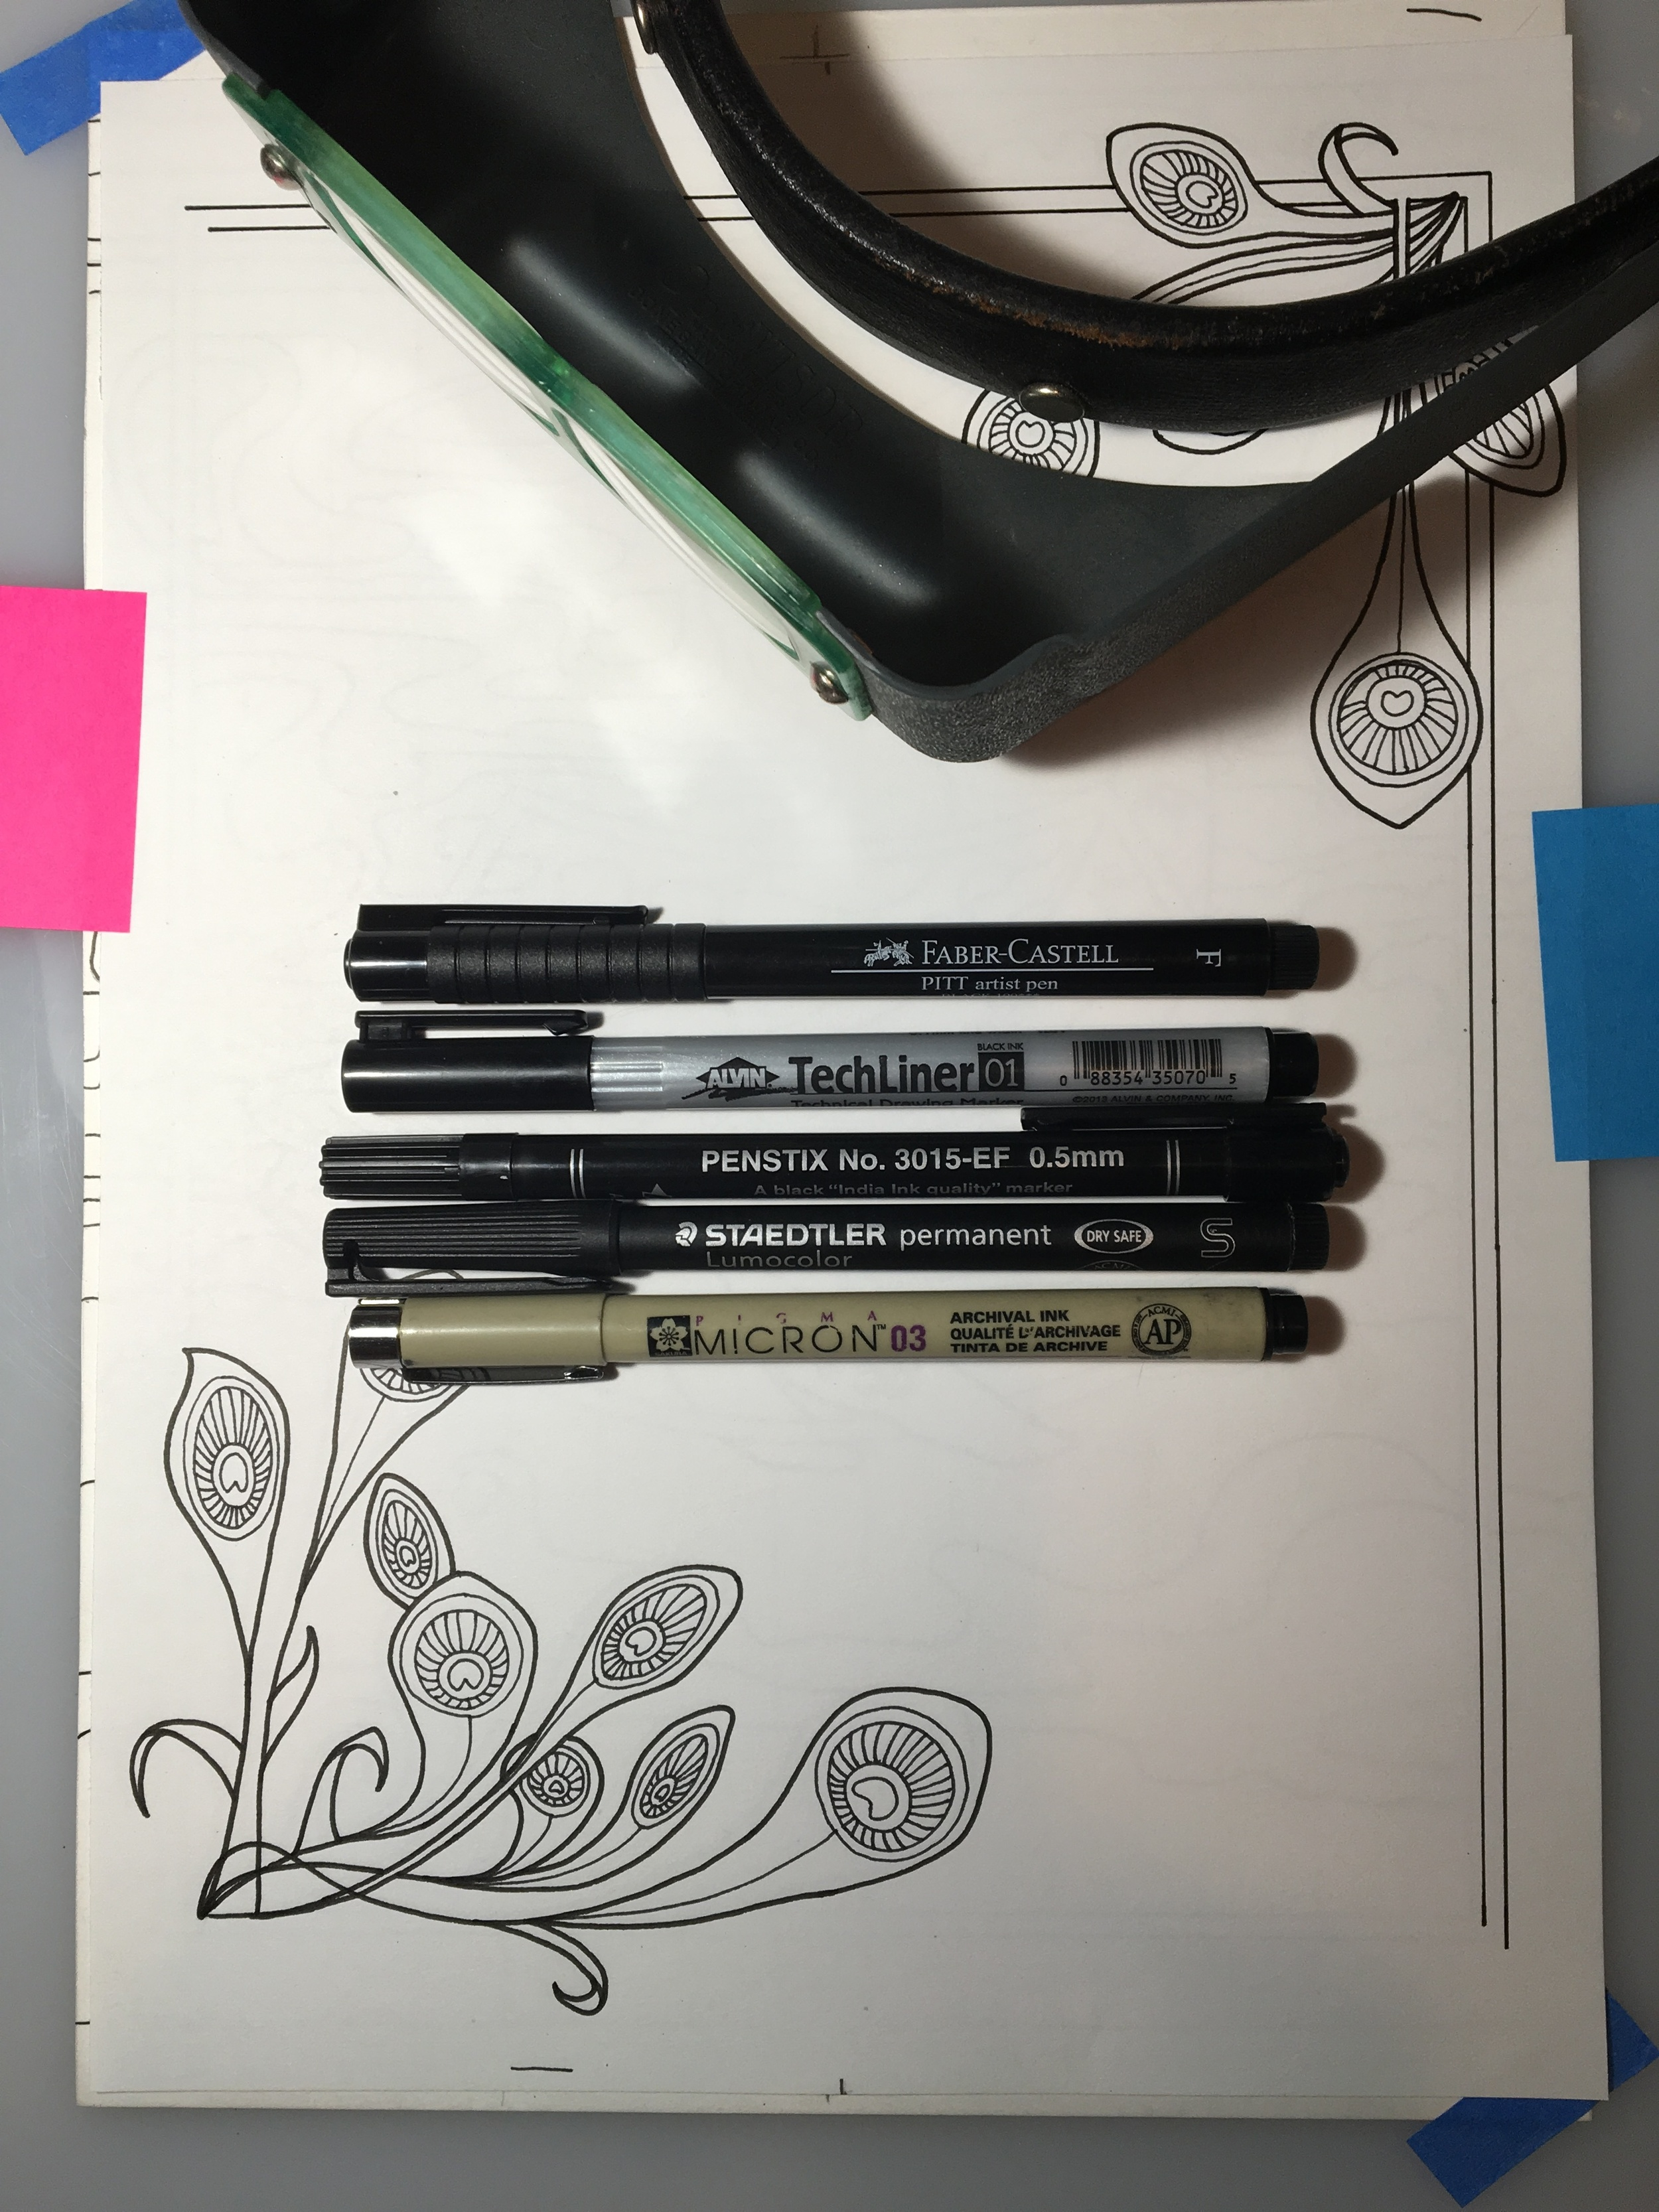 The pens in the test above.